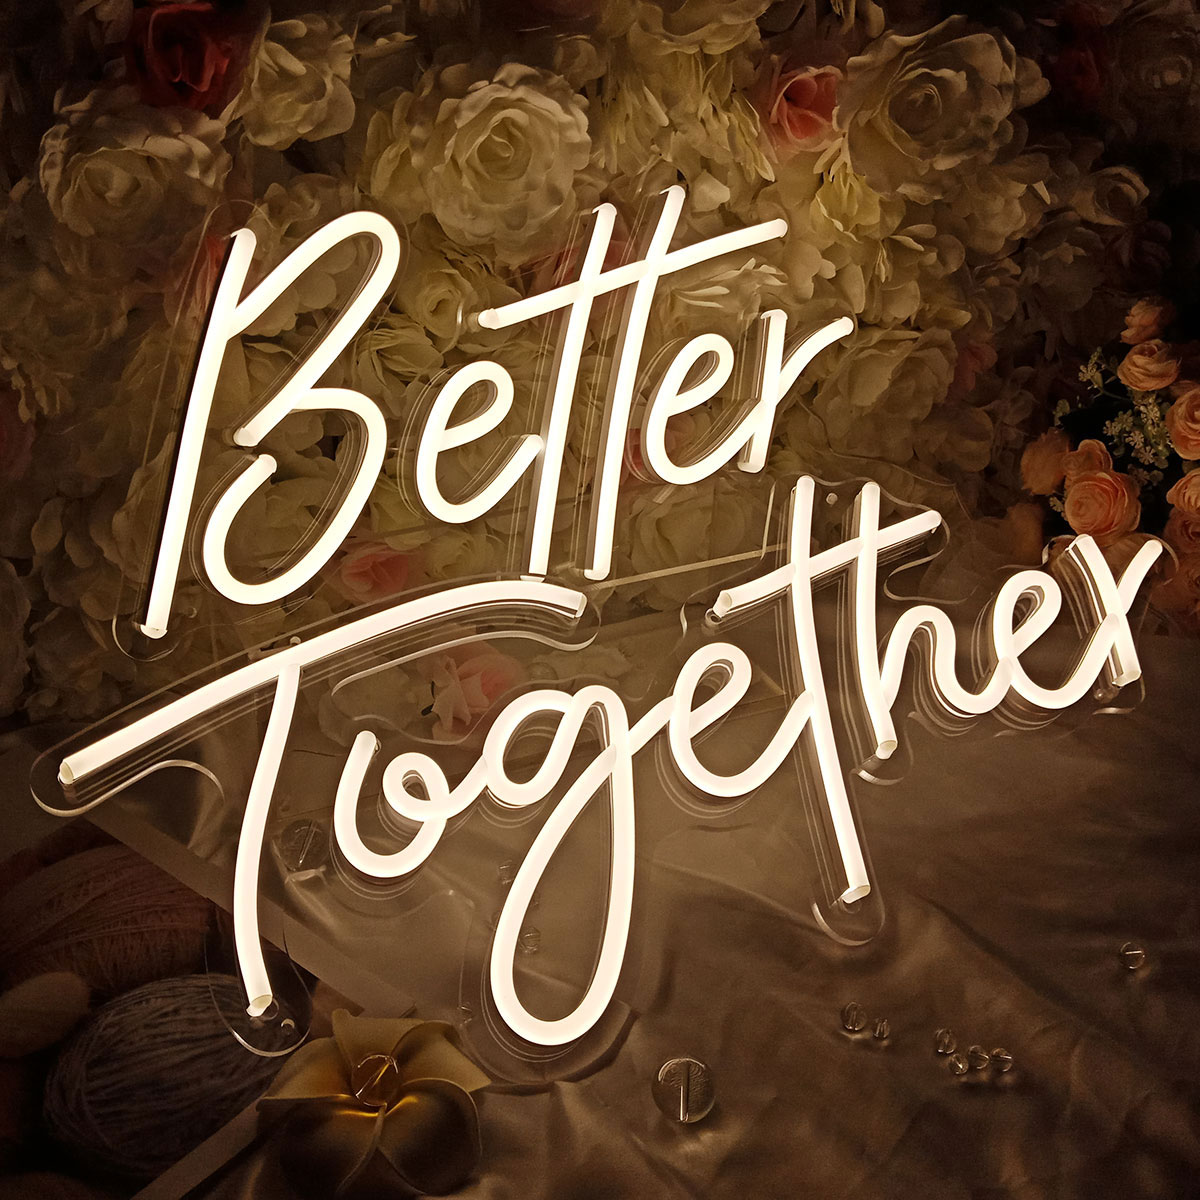 US Stock CALCA Warm White Better Together Neon Sign Size-23.5x10inches+17.3 x8.7inches